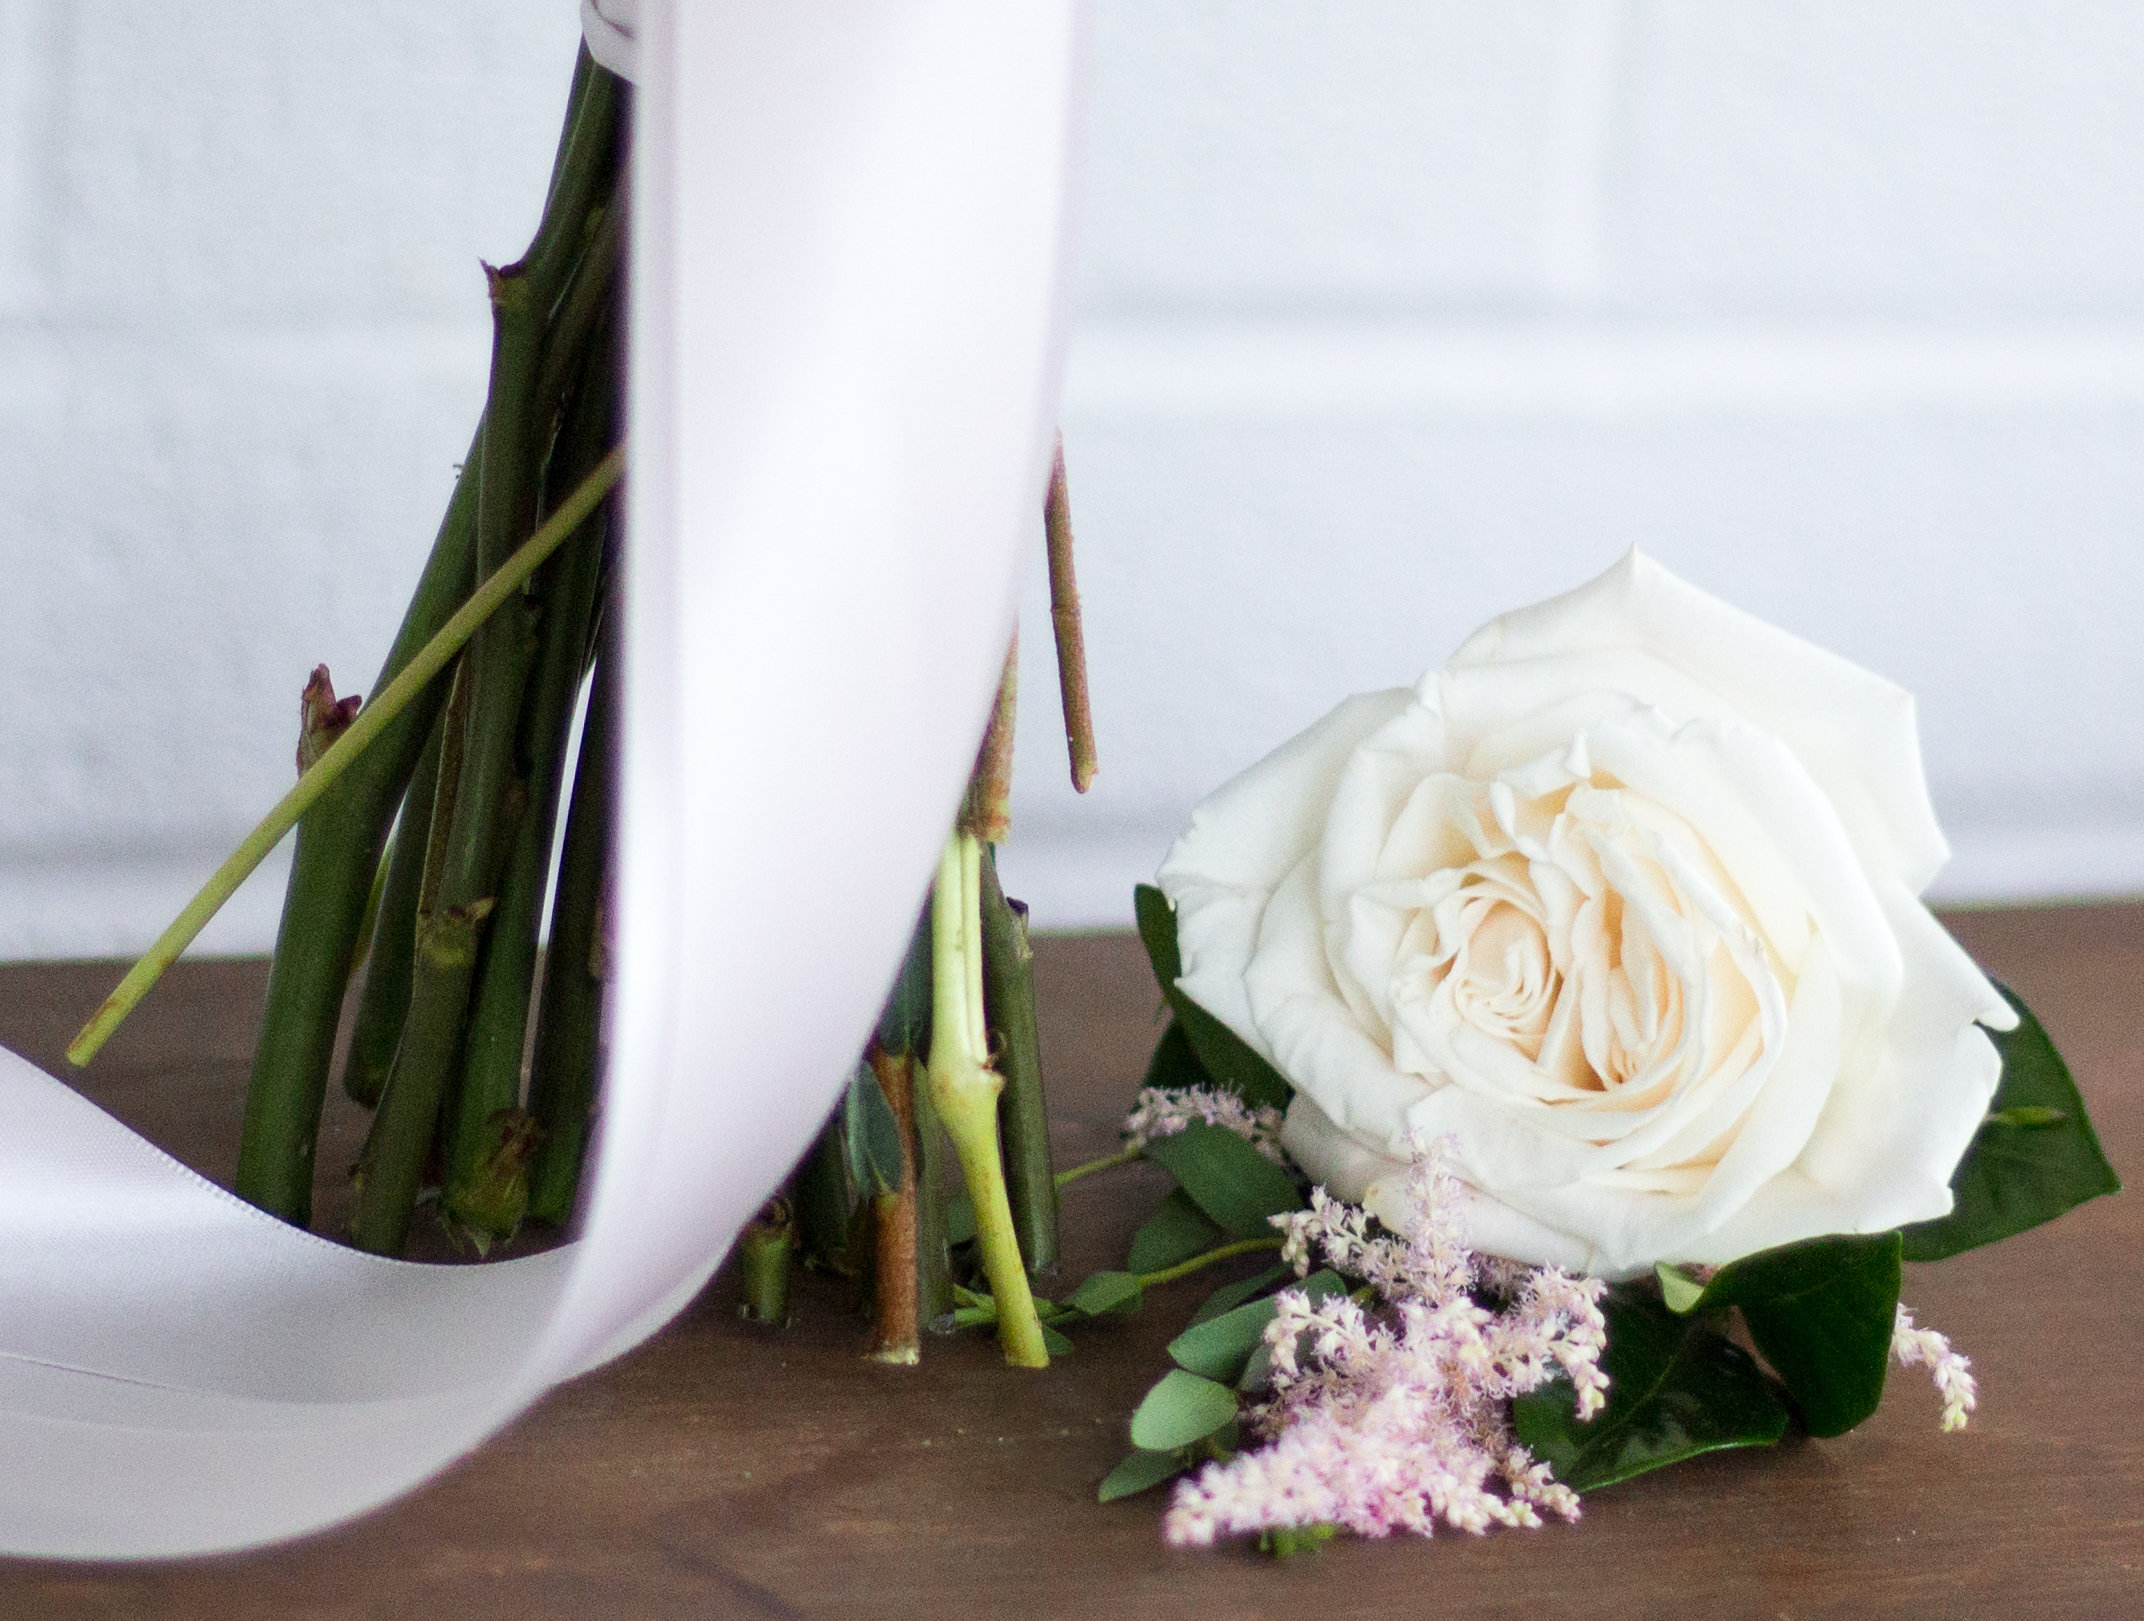 Love & Luster Floral Design Rose and Astilbe Boutonniere